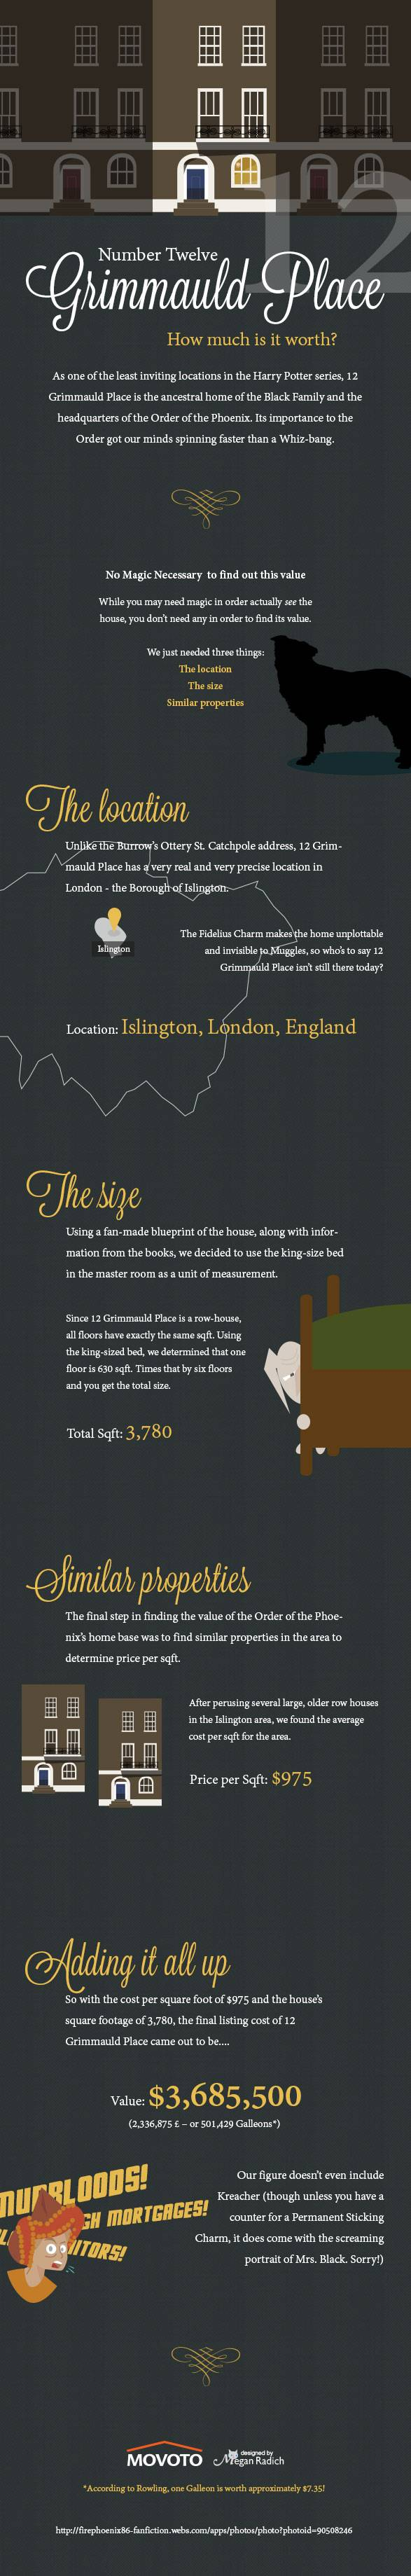 12grimm-infographic-2